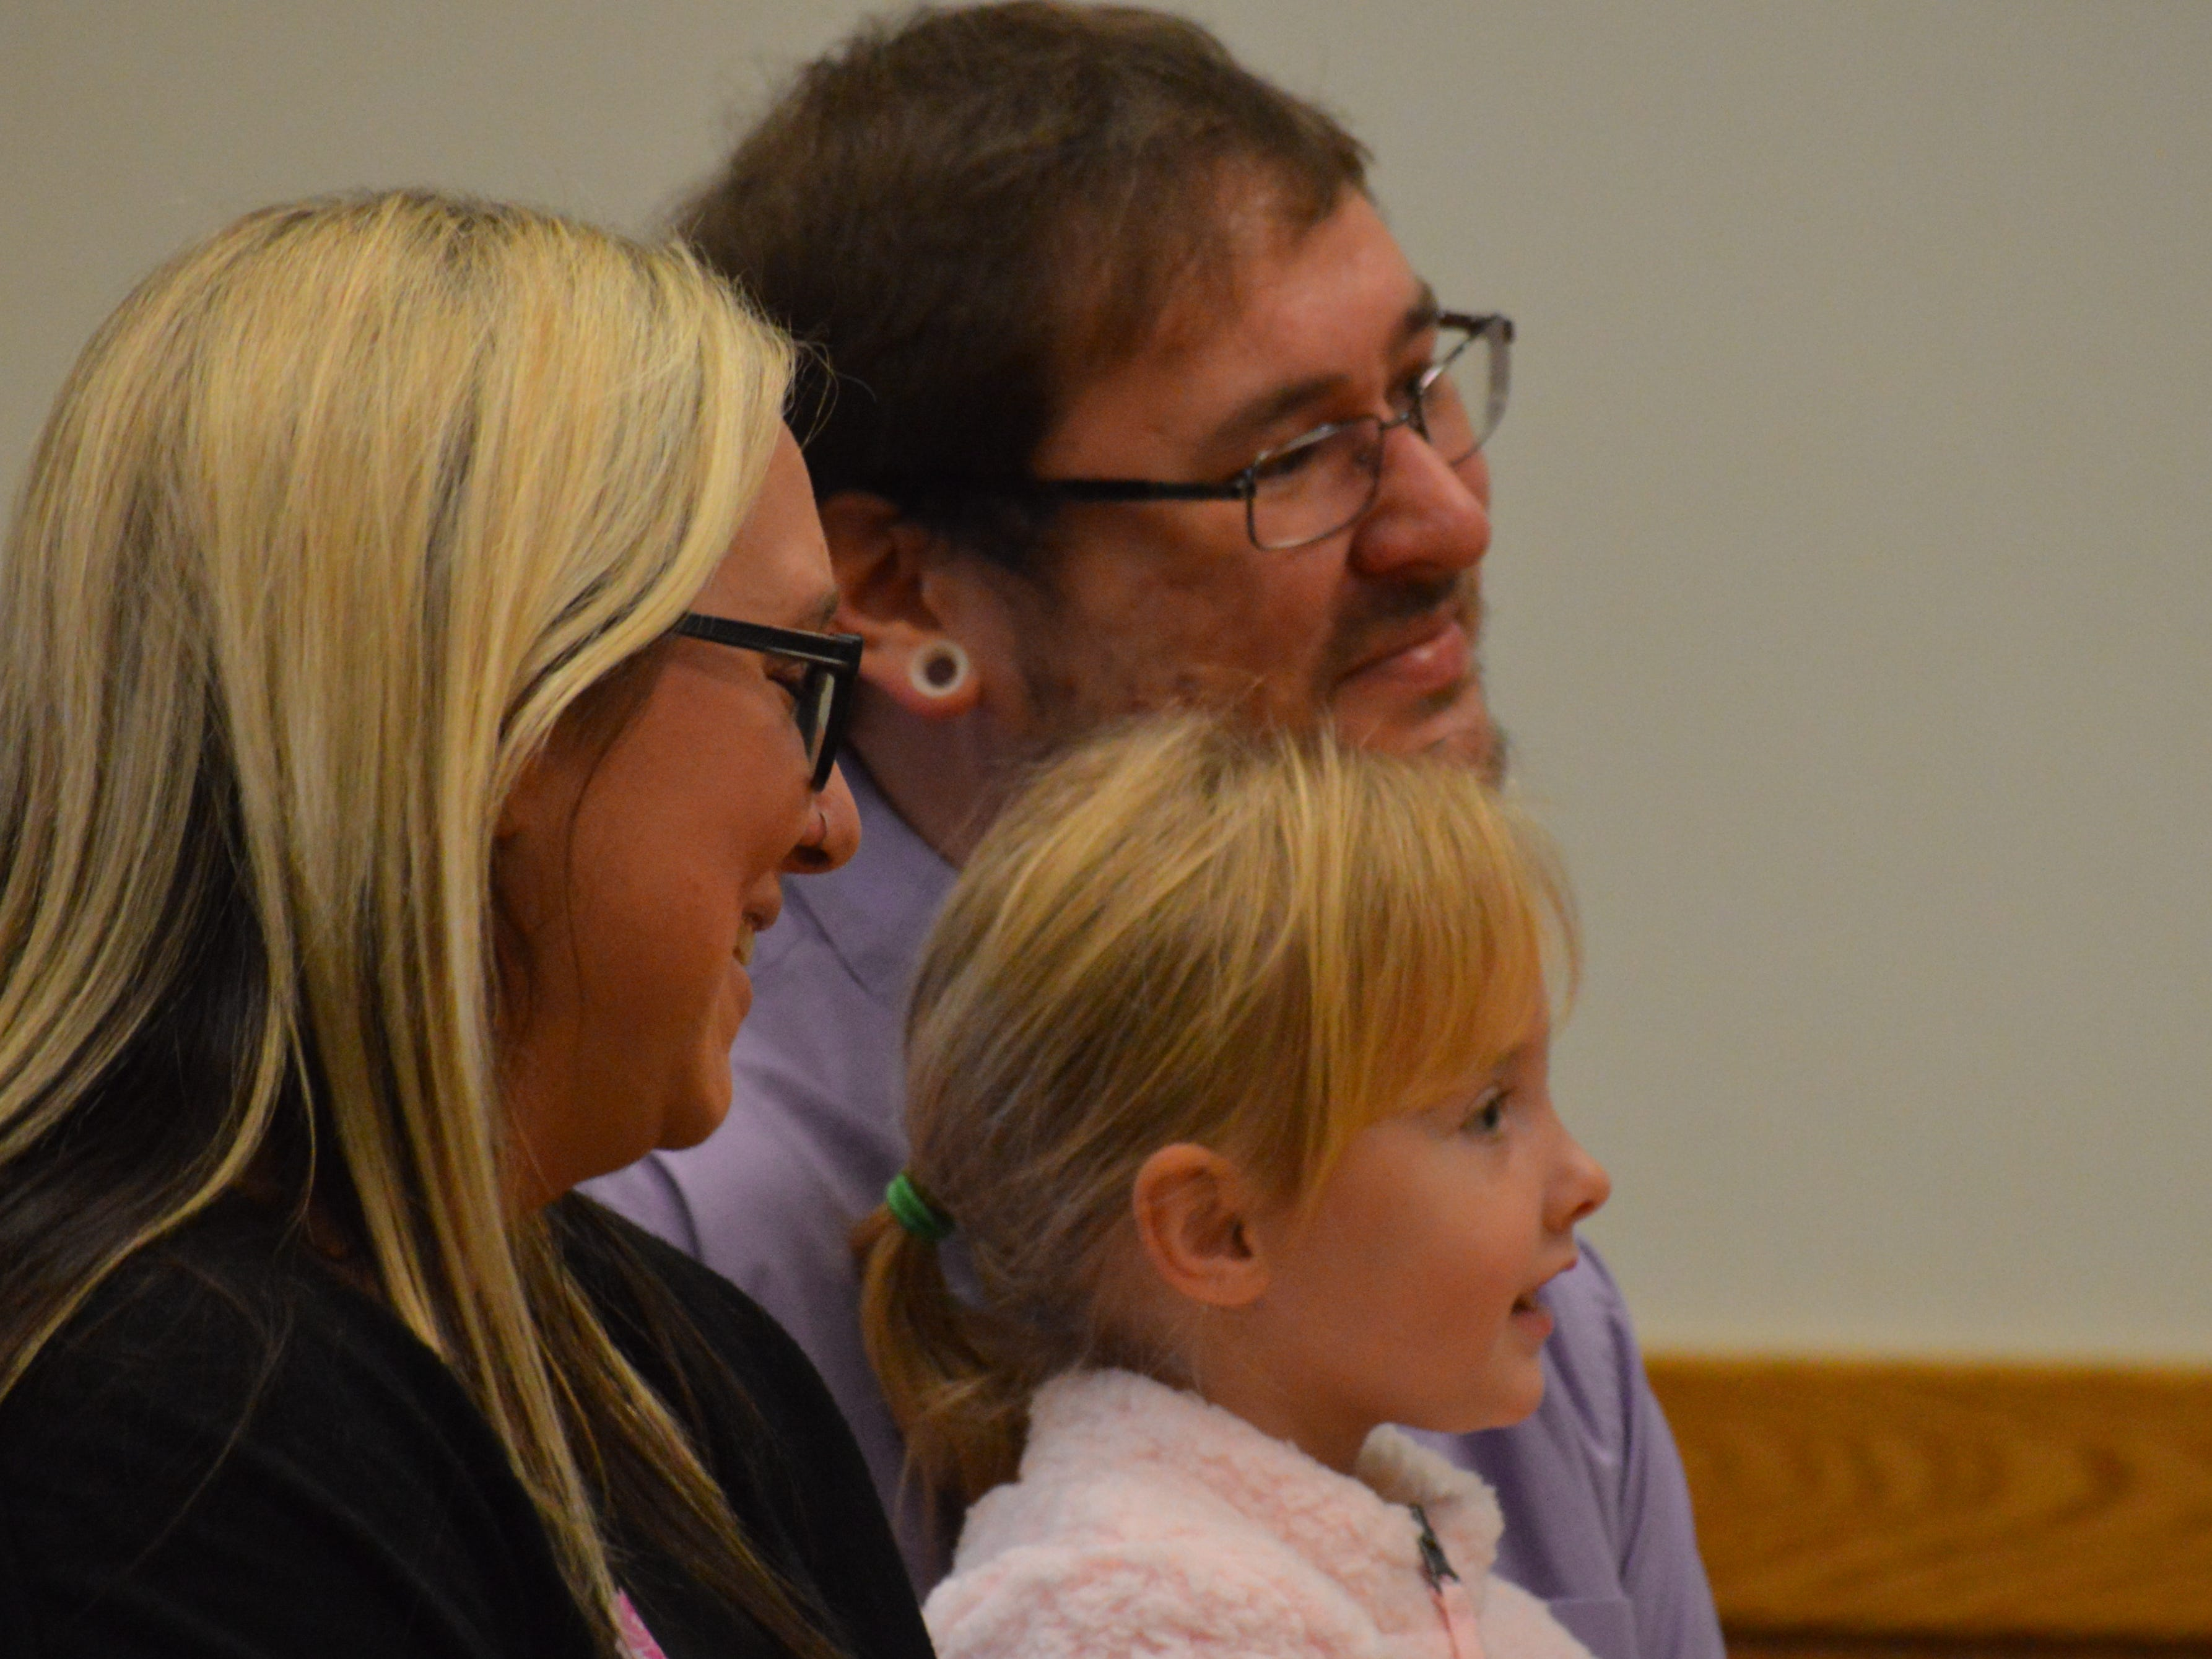 Jessica and Alexander Drew, with their daughter Layla, address Livingston County Chief Judge Miriam Cavanaugh on Tuesday Nov. 20, 2018. Layla was legally adopted by Alexander.